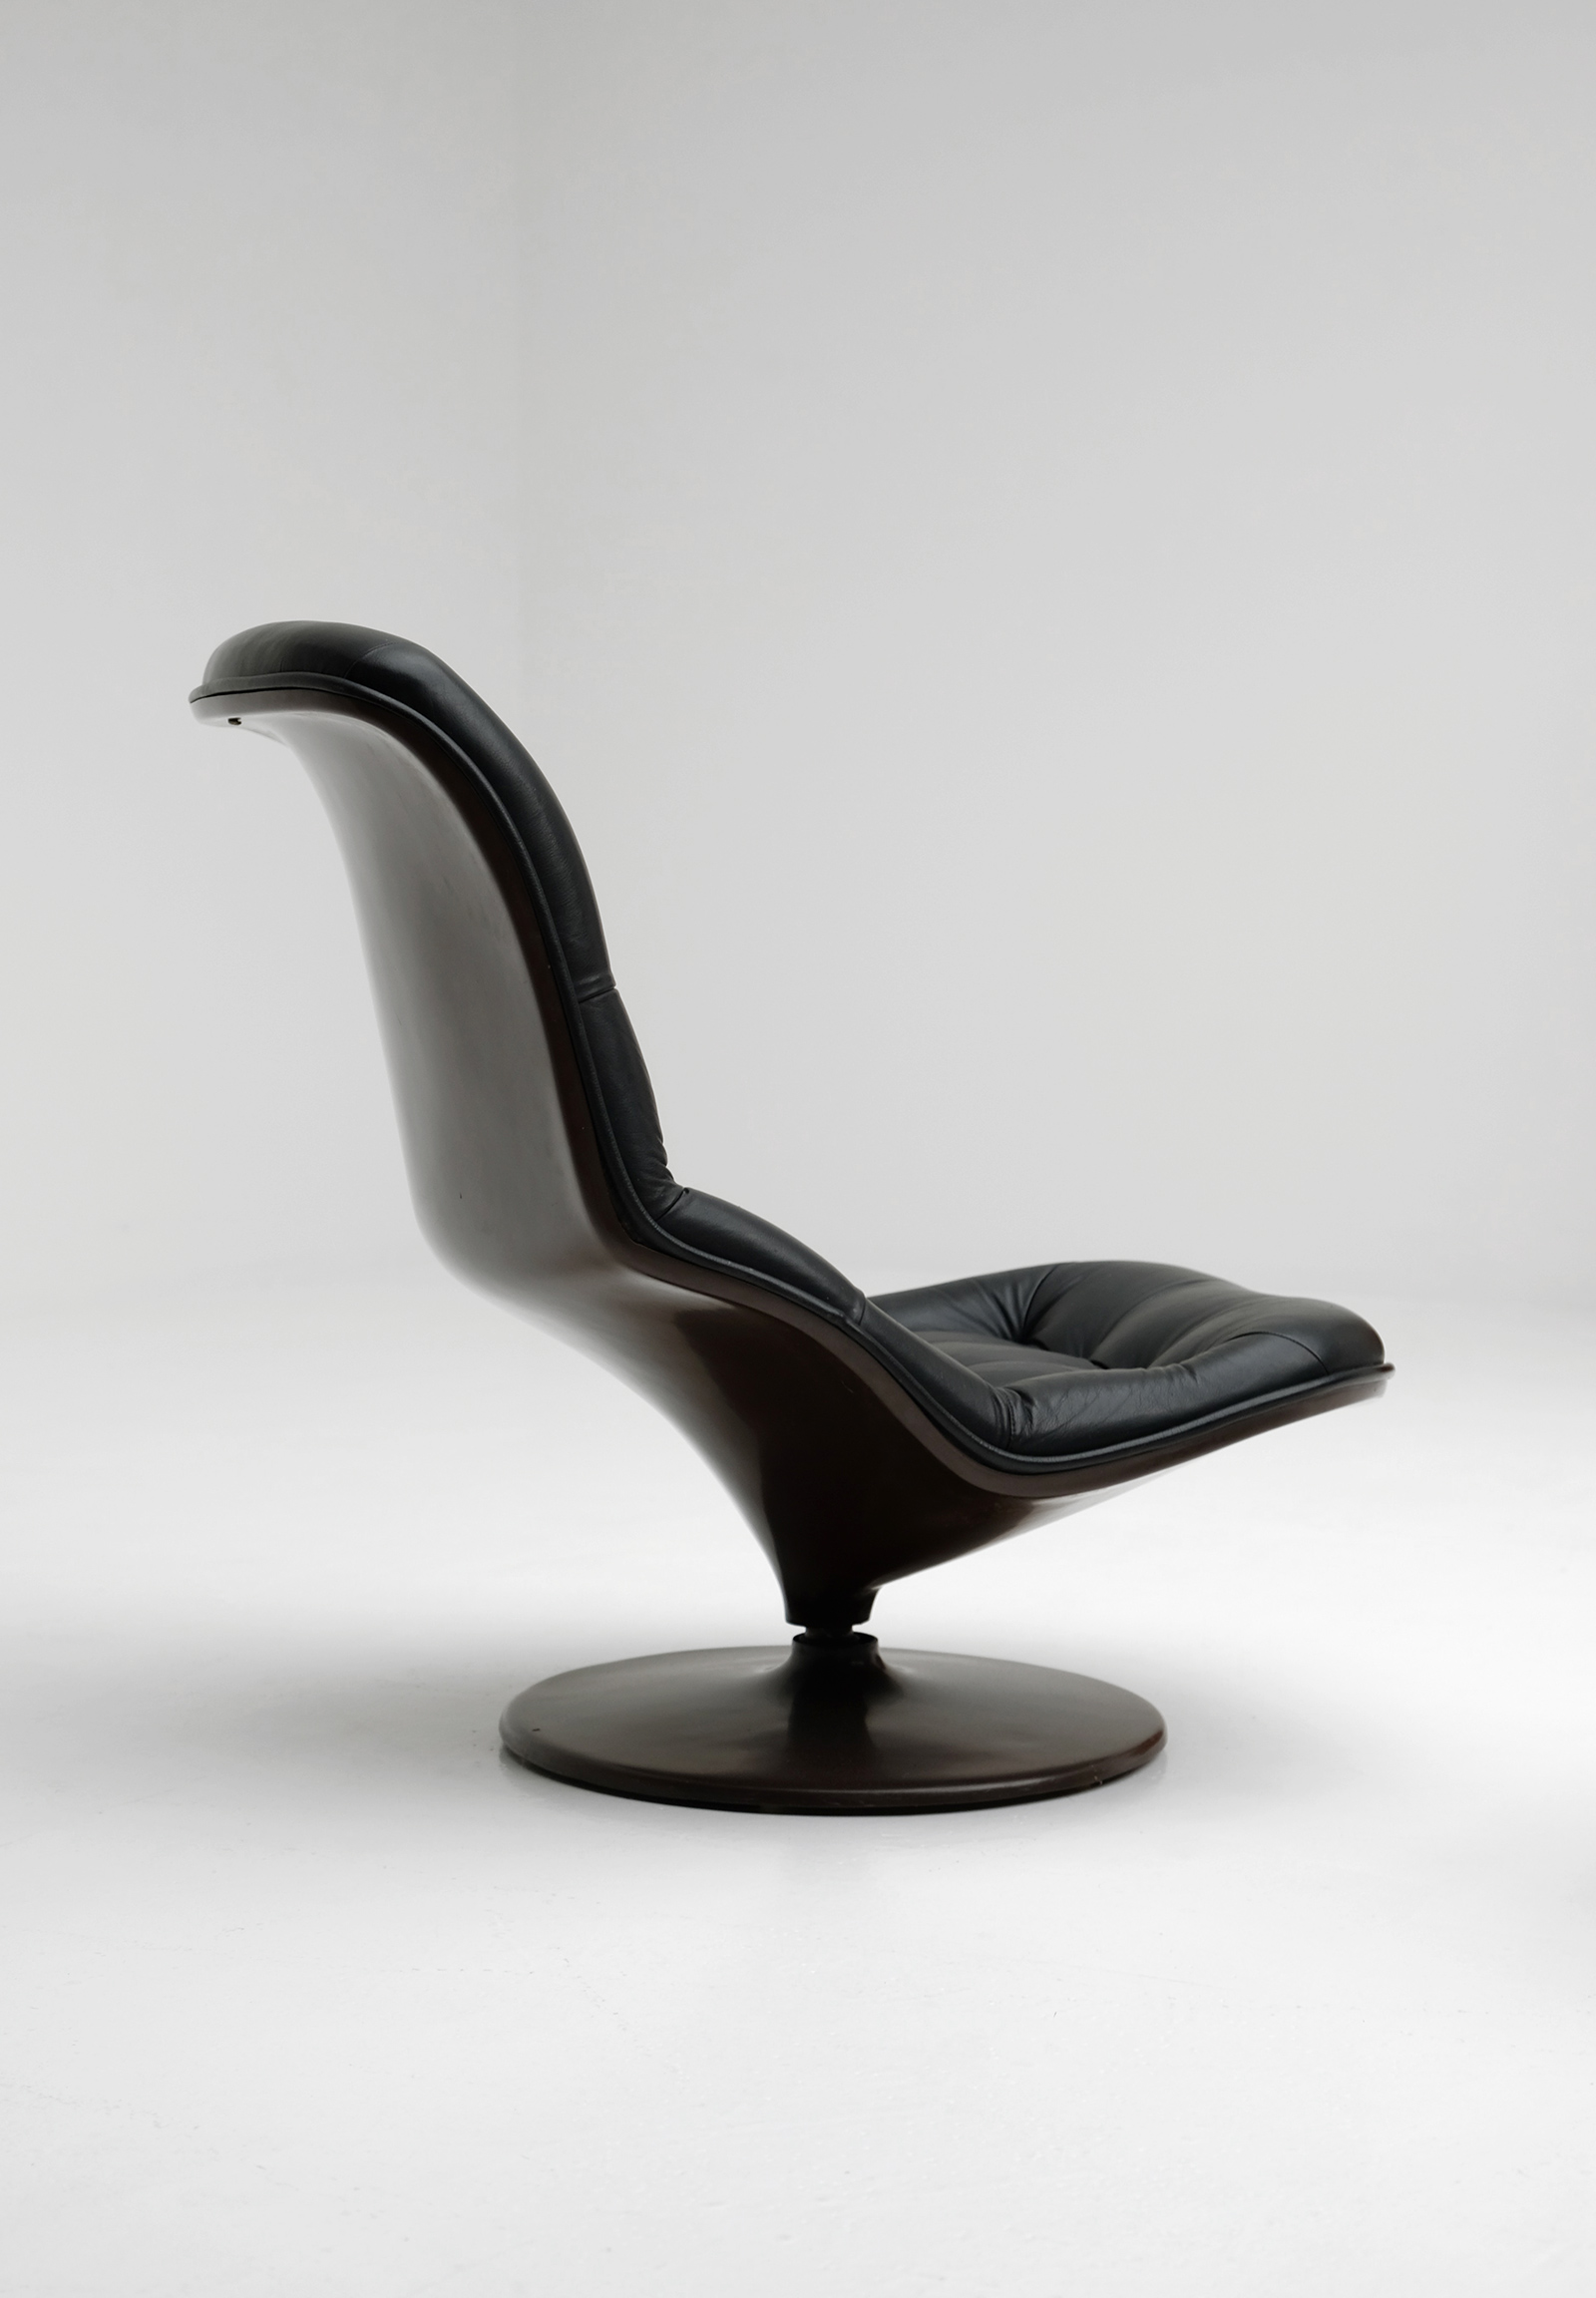 Georges Van Rijck Shelby Lounge chairimage 2